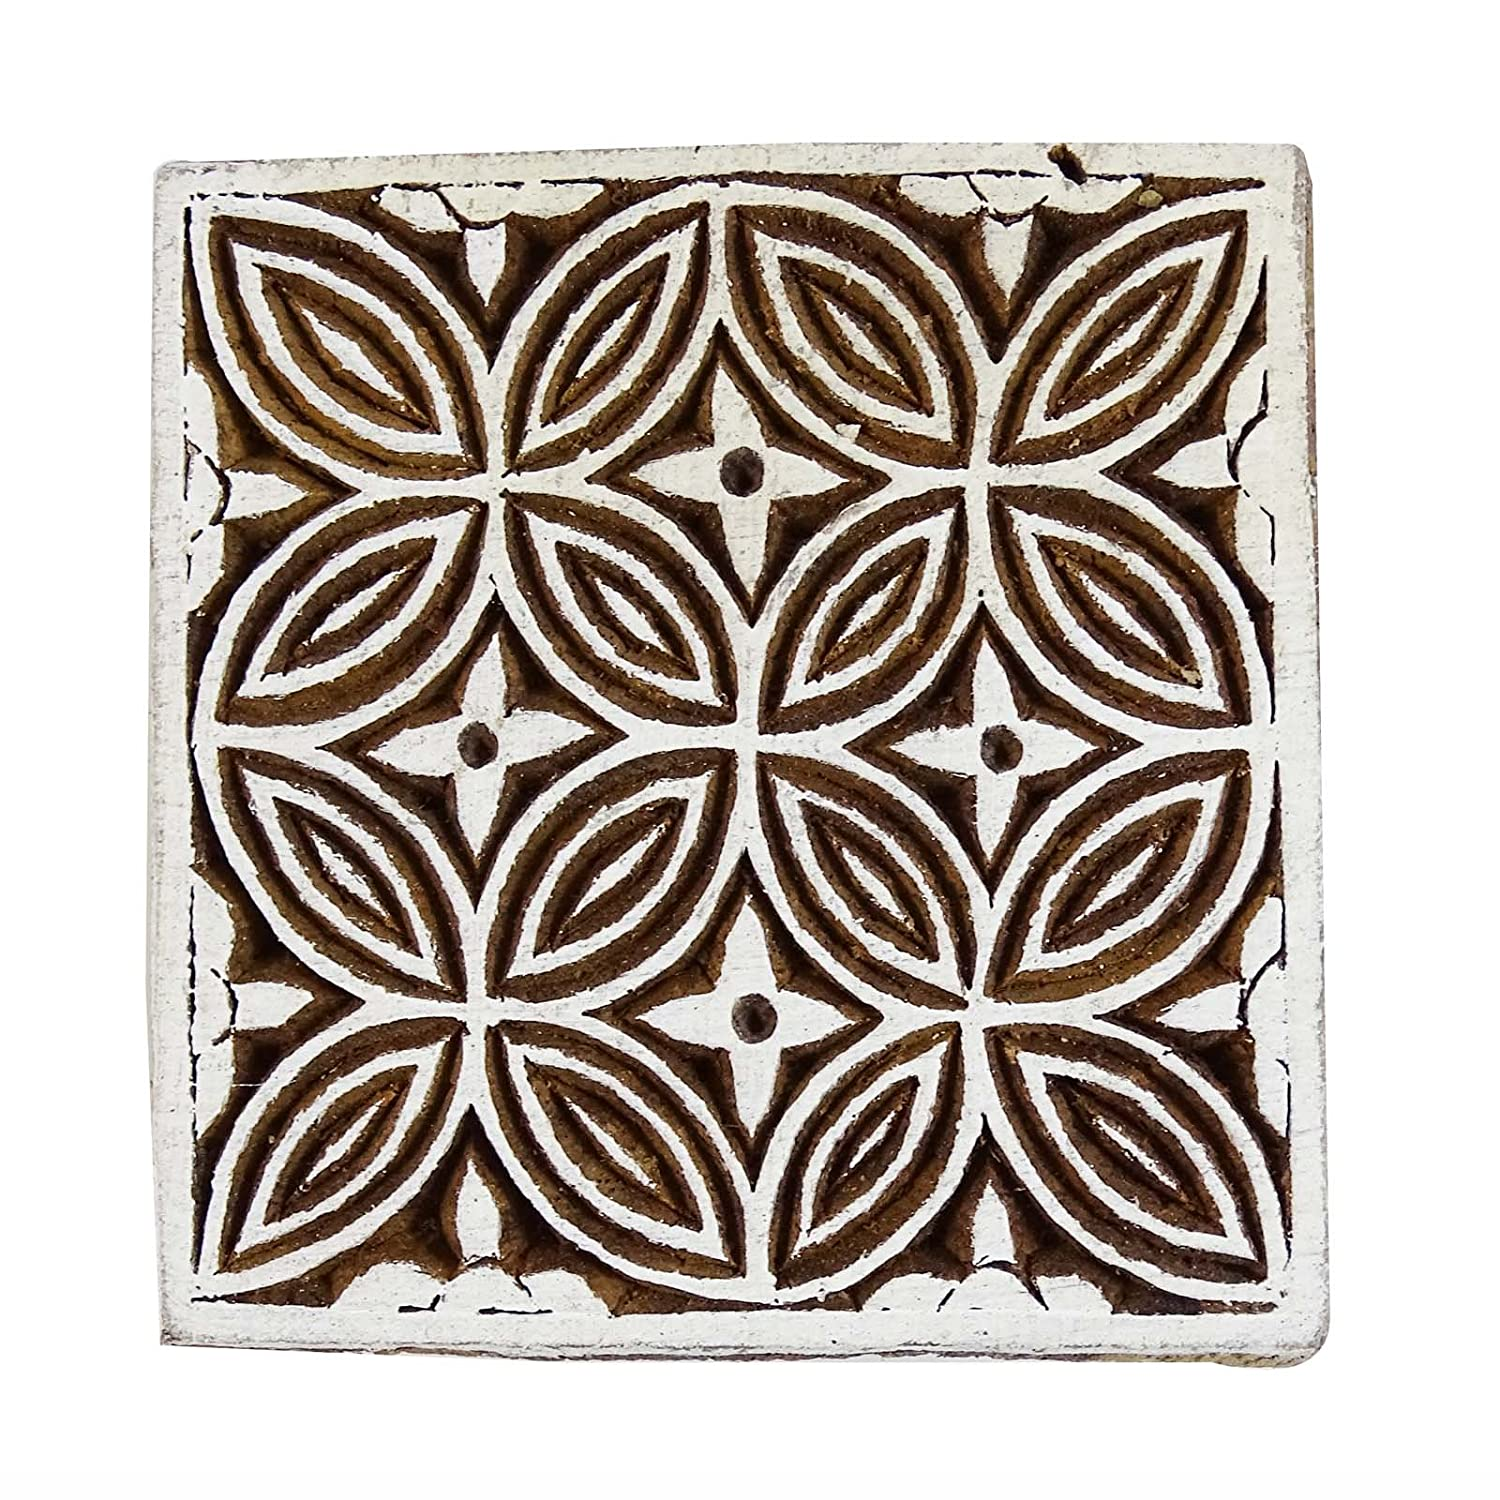 Floral Stamp Textile Stamp Indian Brown Wood Stamps Hand Craved Printing Block